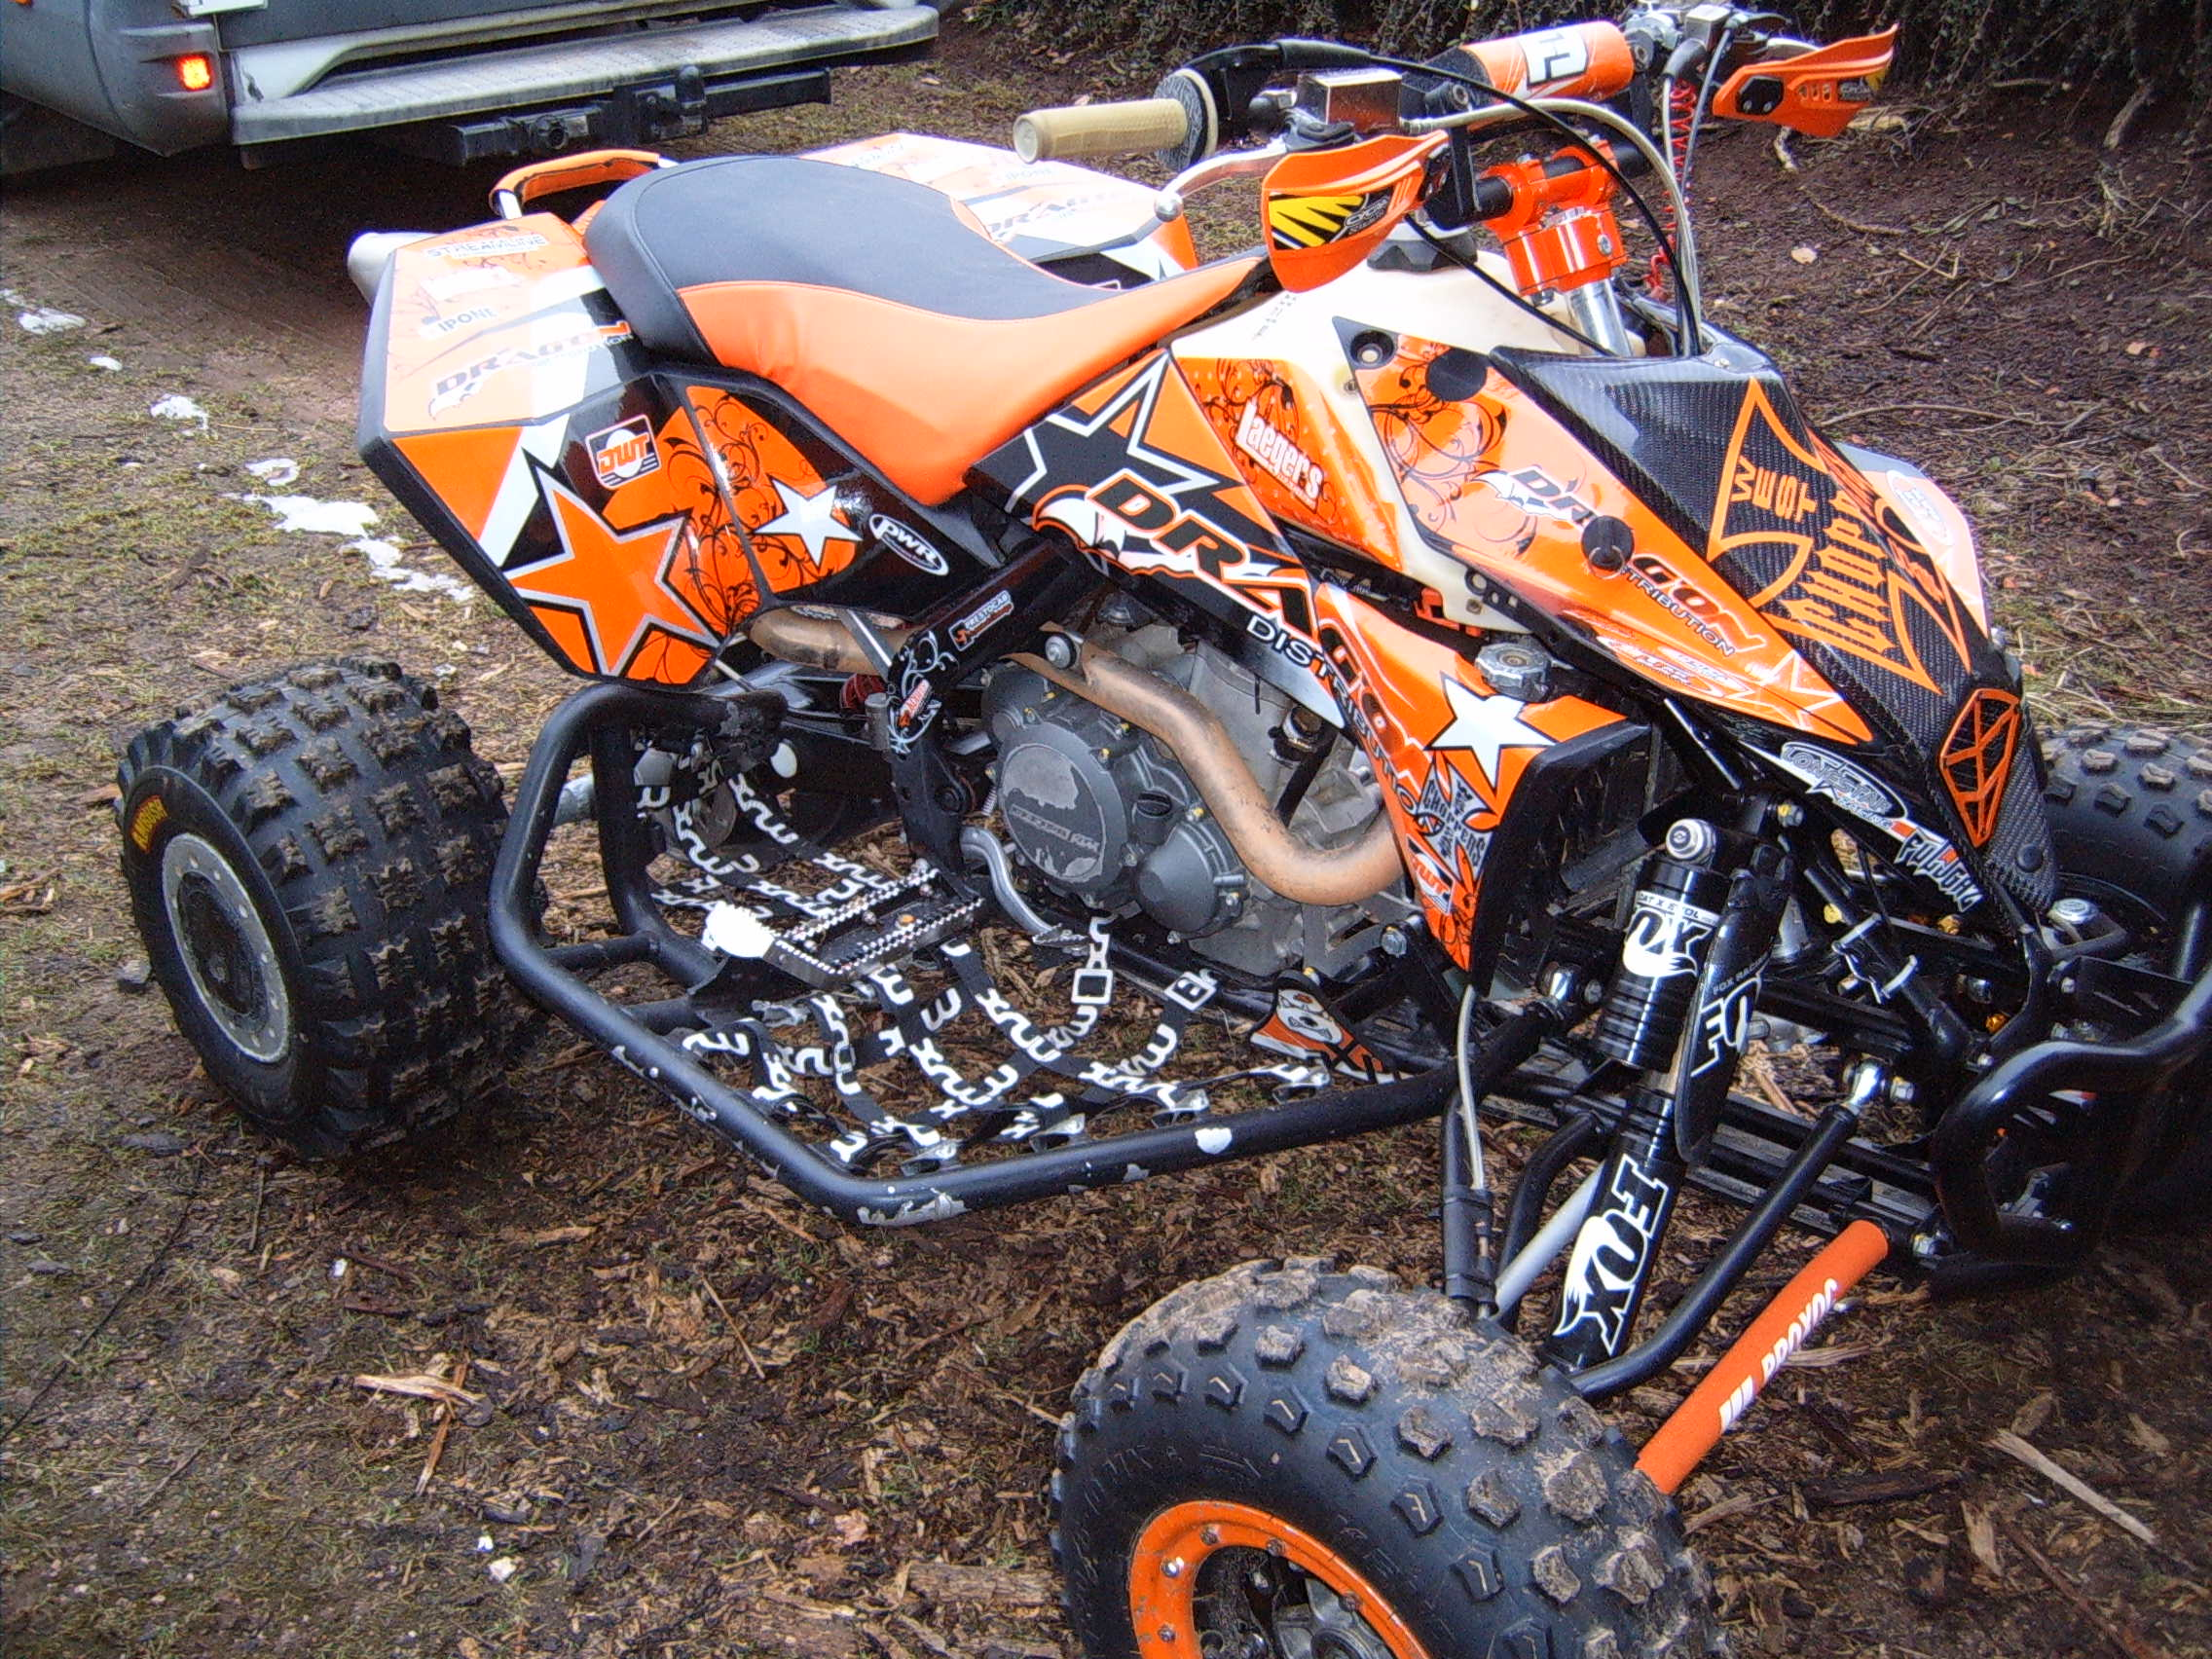 525 Ktm Quad For Sale. XC Atv Quad Offroad Motorbike Bike Dirtbike ...